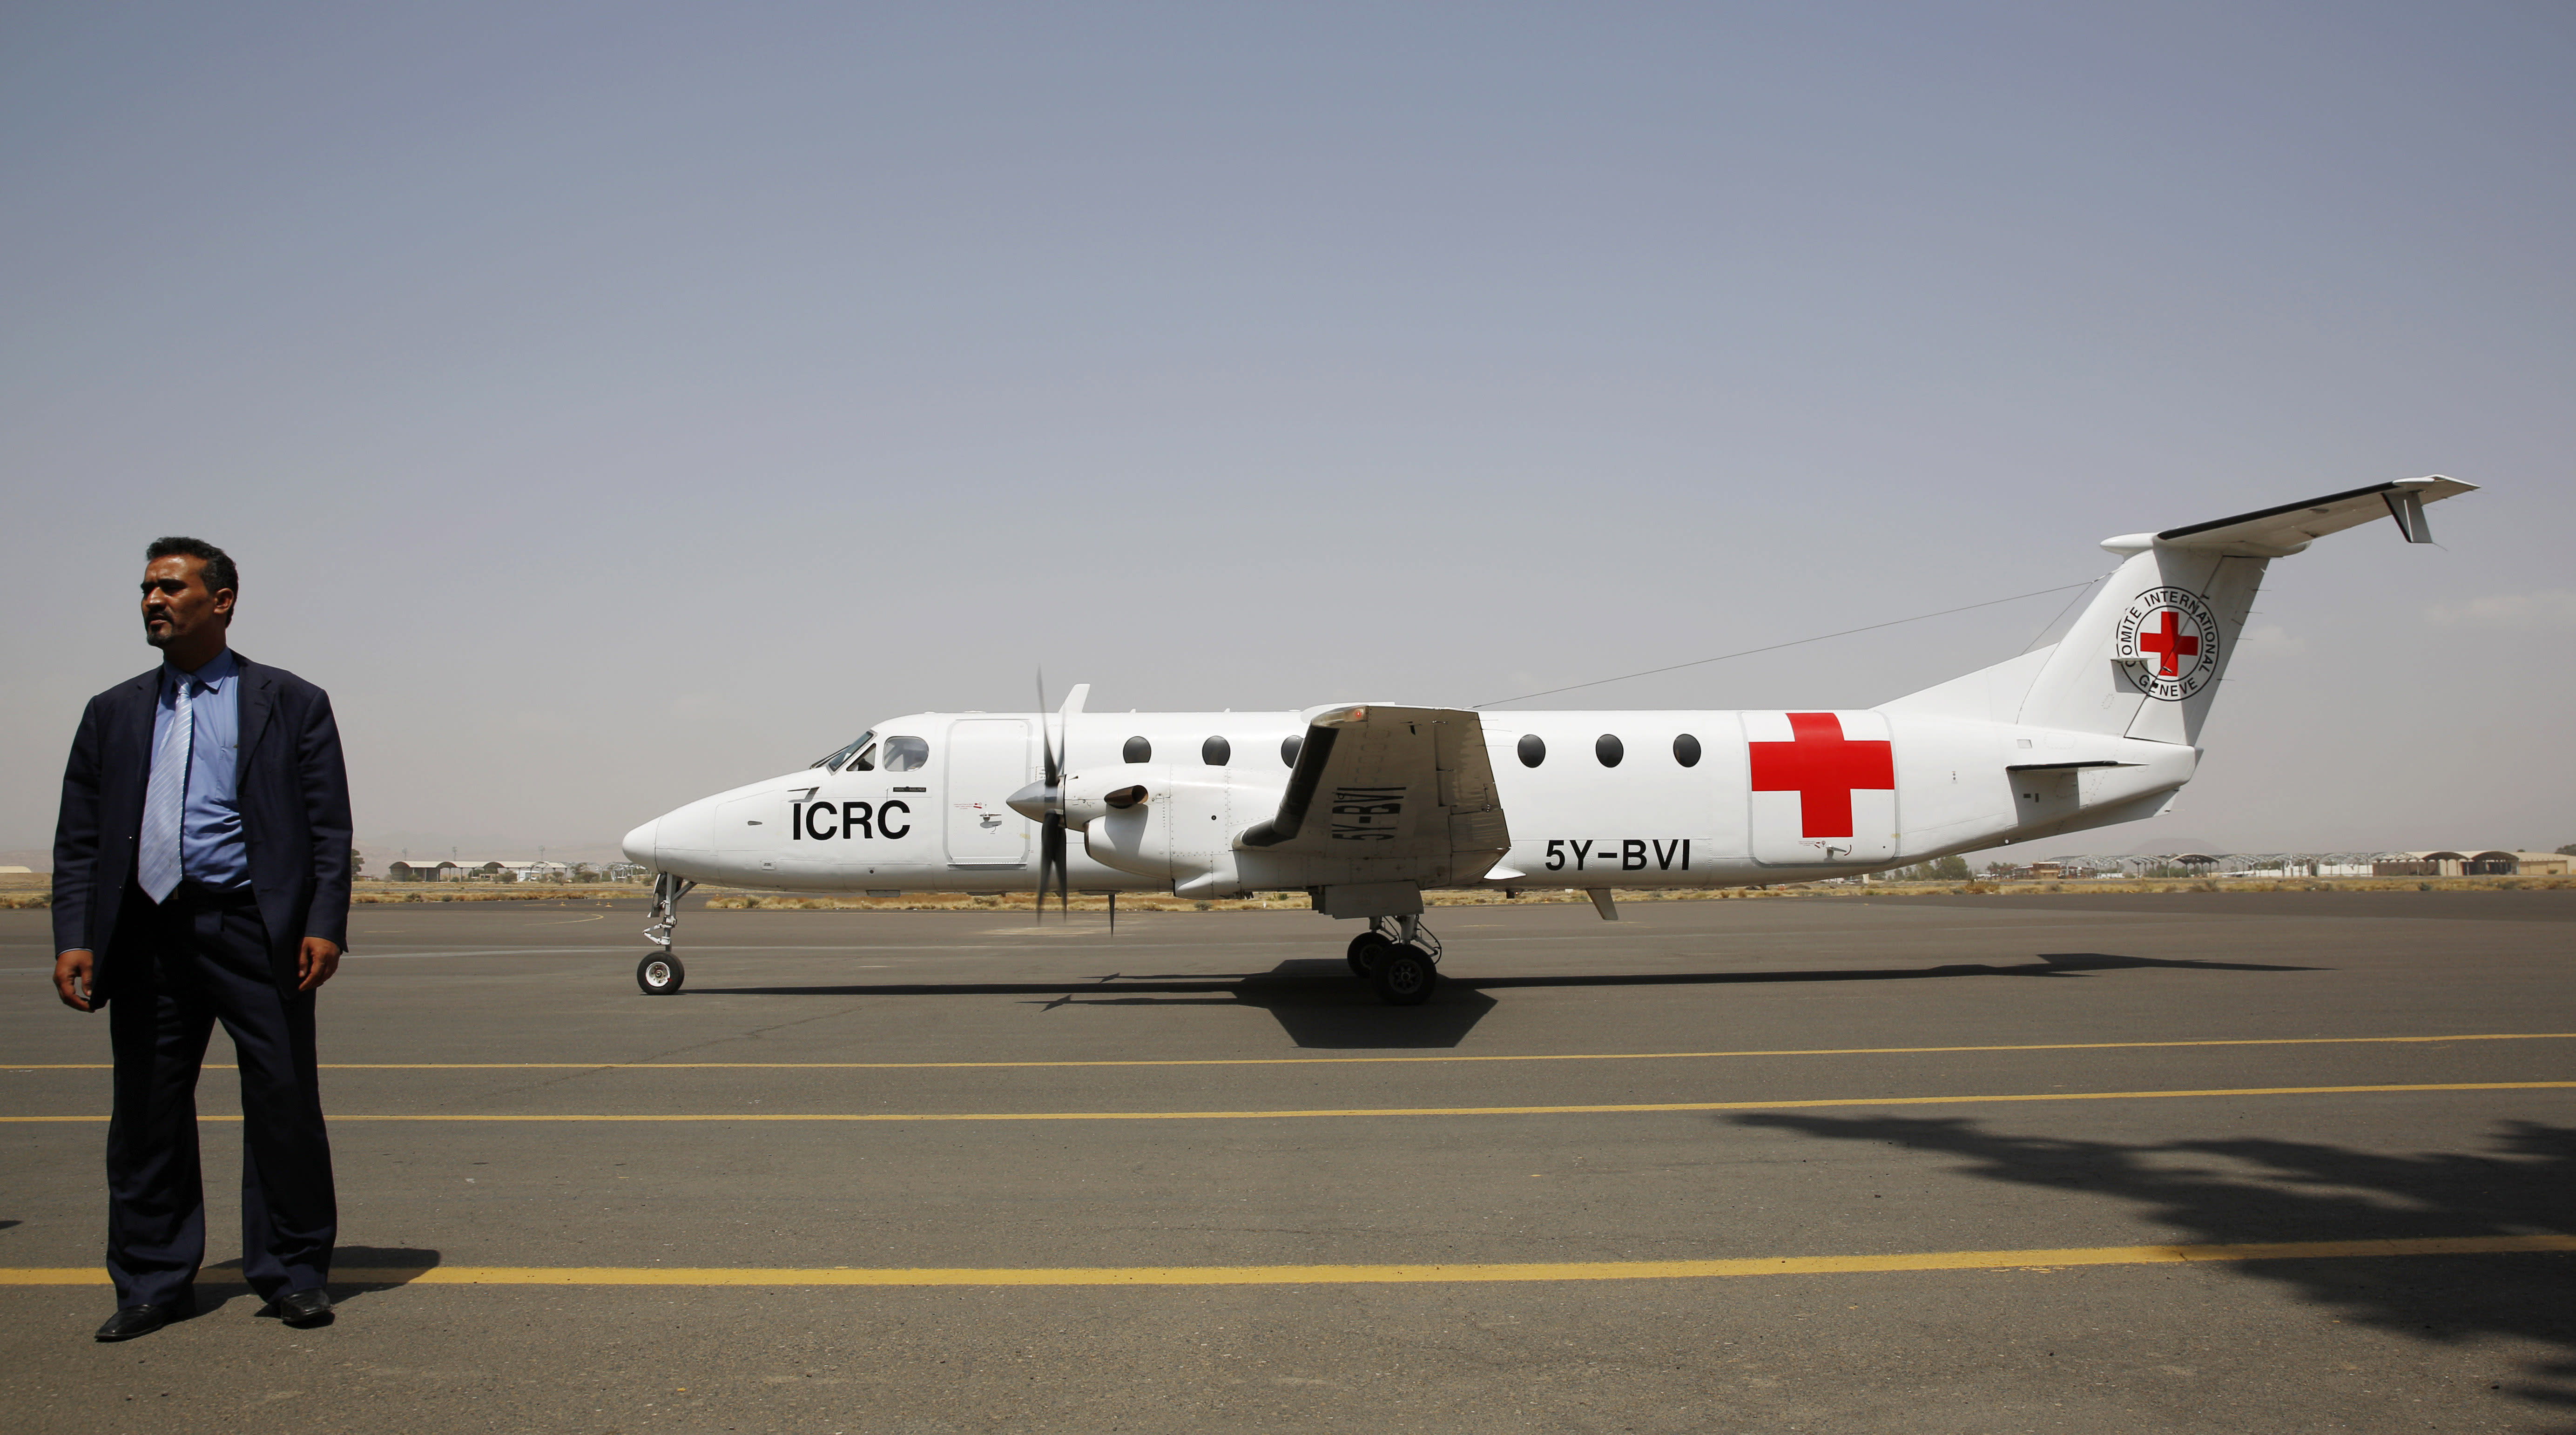 """FILE - In this Aug. 8, 2015 file photo, a Yemeni airport security official stands by a plane of the International Committee of the Red Cross on the tarmac of the international airport in Sanaa, Yemen. The Norwegian Refugee Council and CARE have slammed the Saudi-led coalition for its closure of the airport in Yemen's capital, saying this has prevented thousands of sick civilians from traveling abroad for urgent medical treatment, saying the Sanaa airport's three-year closure has amounted to a """"death sentence"""" for many sick Yemenis. The two aid groups appealed late Monday, Aug 5, 2019 on Yemen's warring parties to come to an agreement to reopen the airport for commercial flights to """"alleviate humanitarian suffering caused by the closure."""" (AP Photo/Hani Mohammed, File)"""